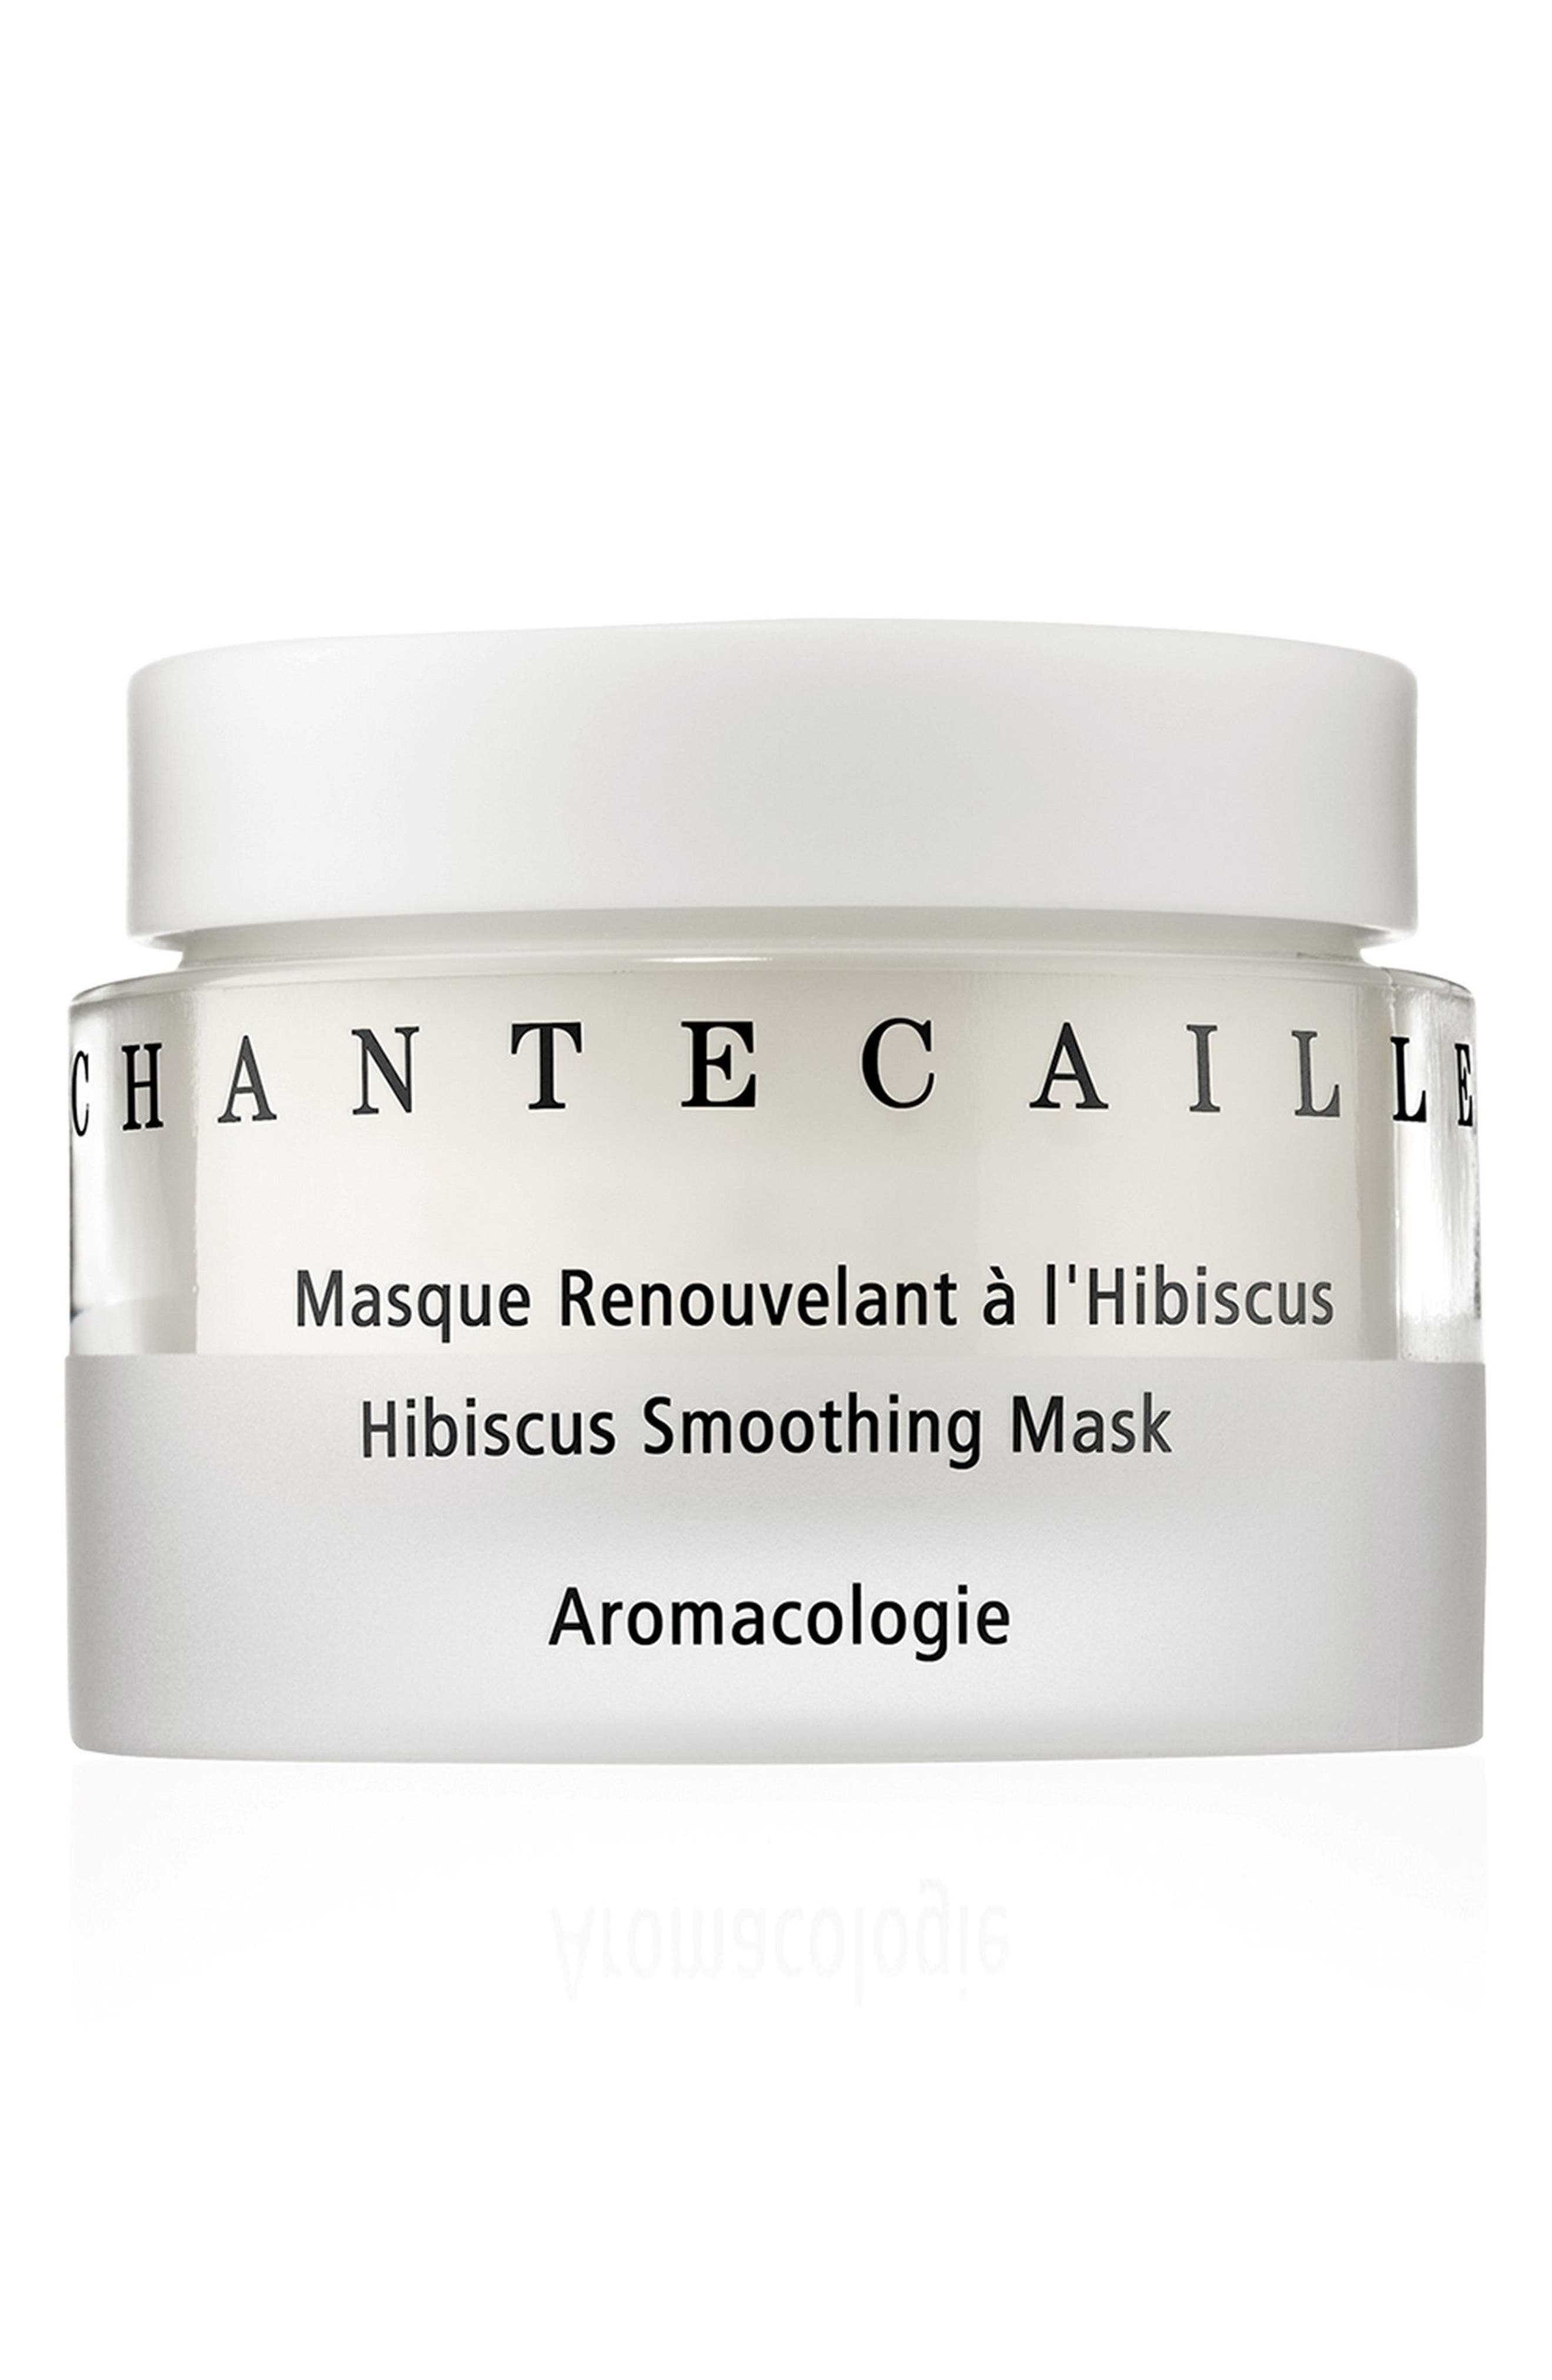 Hibiscus Smoothing Mask,                         Main,                         color, NO COLOR